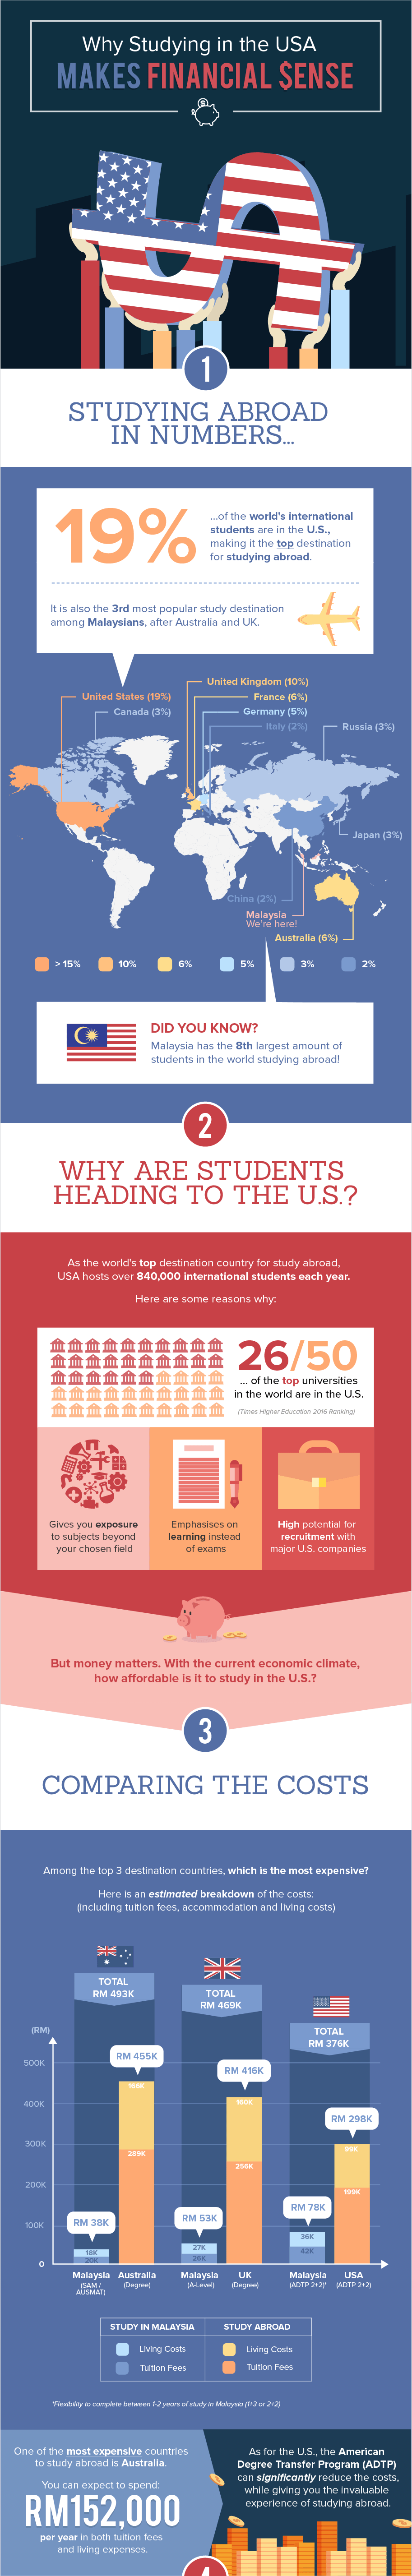 Why Studying in the USA Makes Financial Sense Study